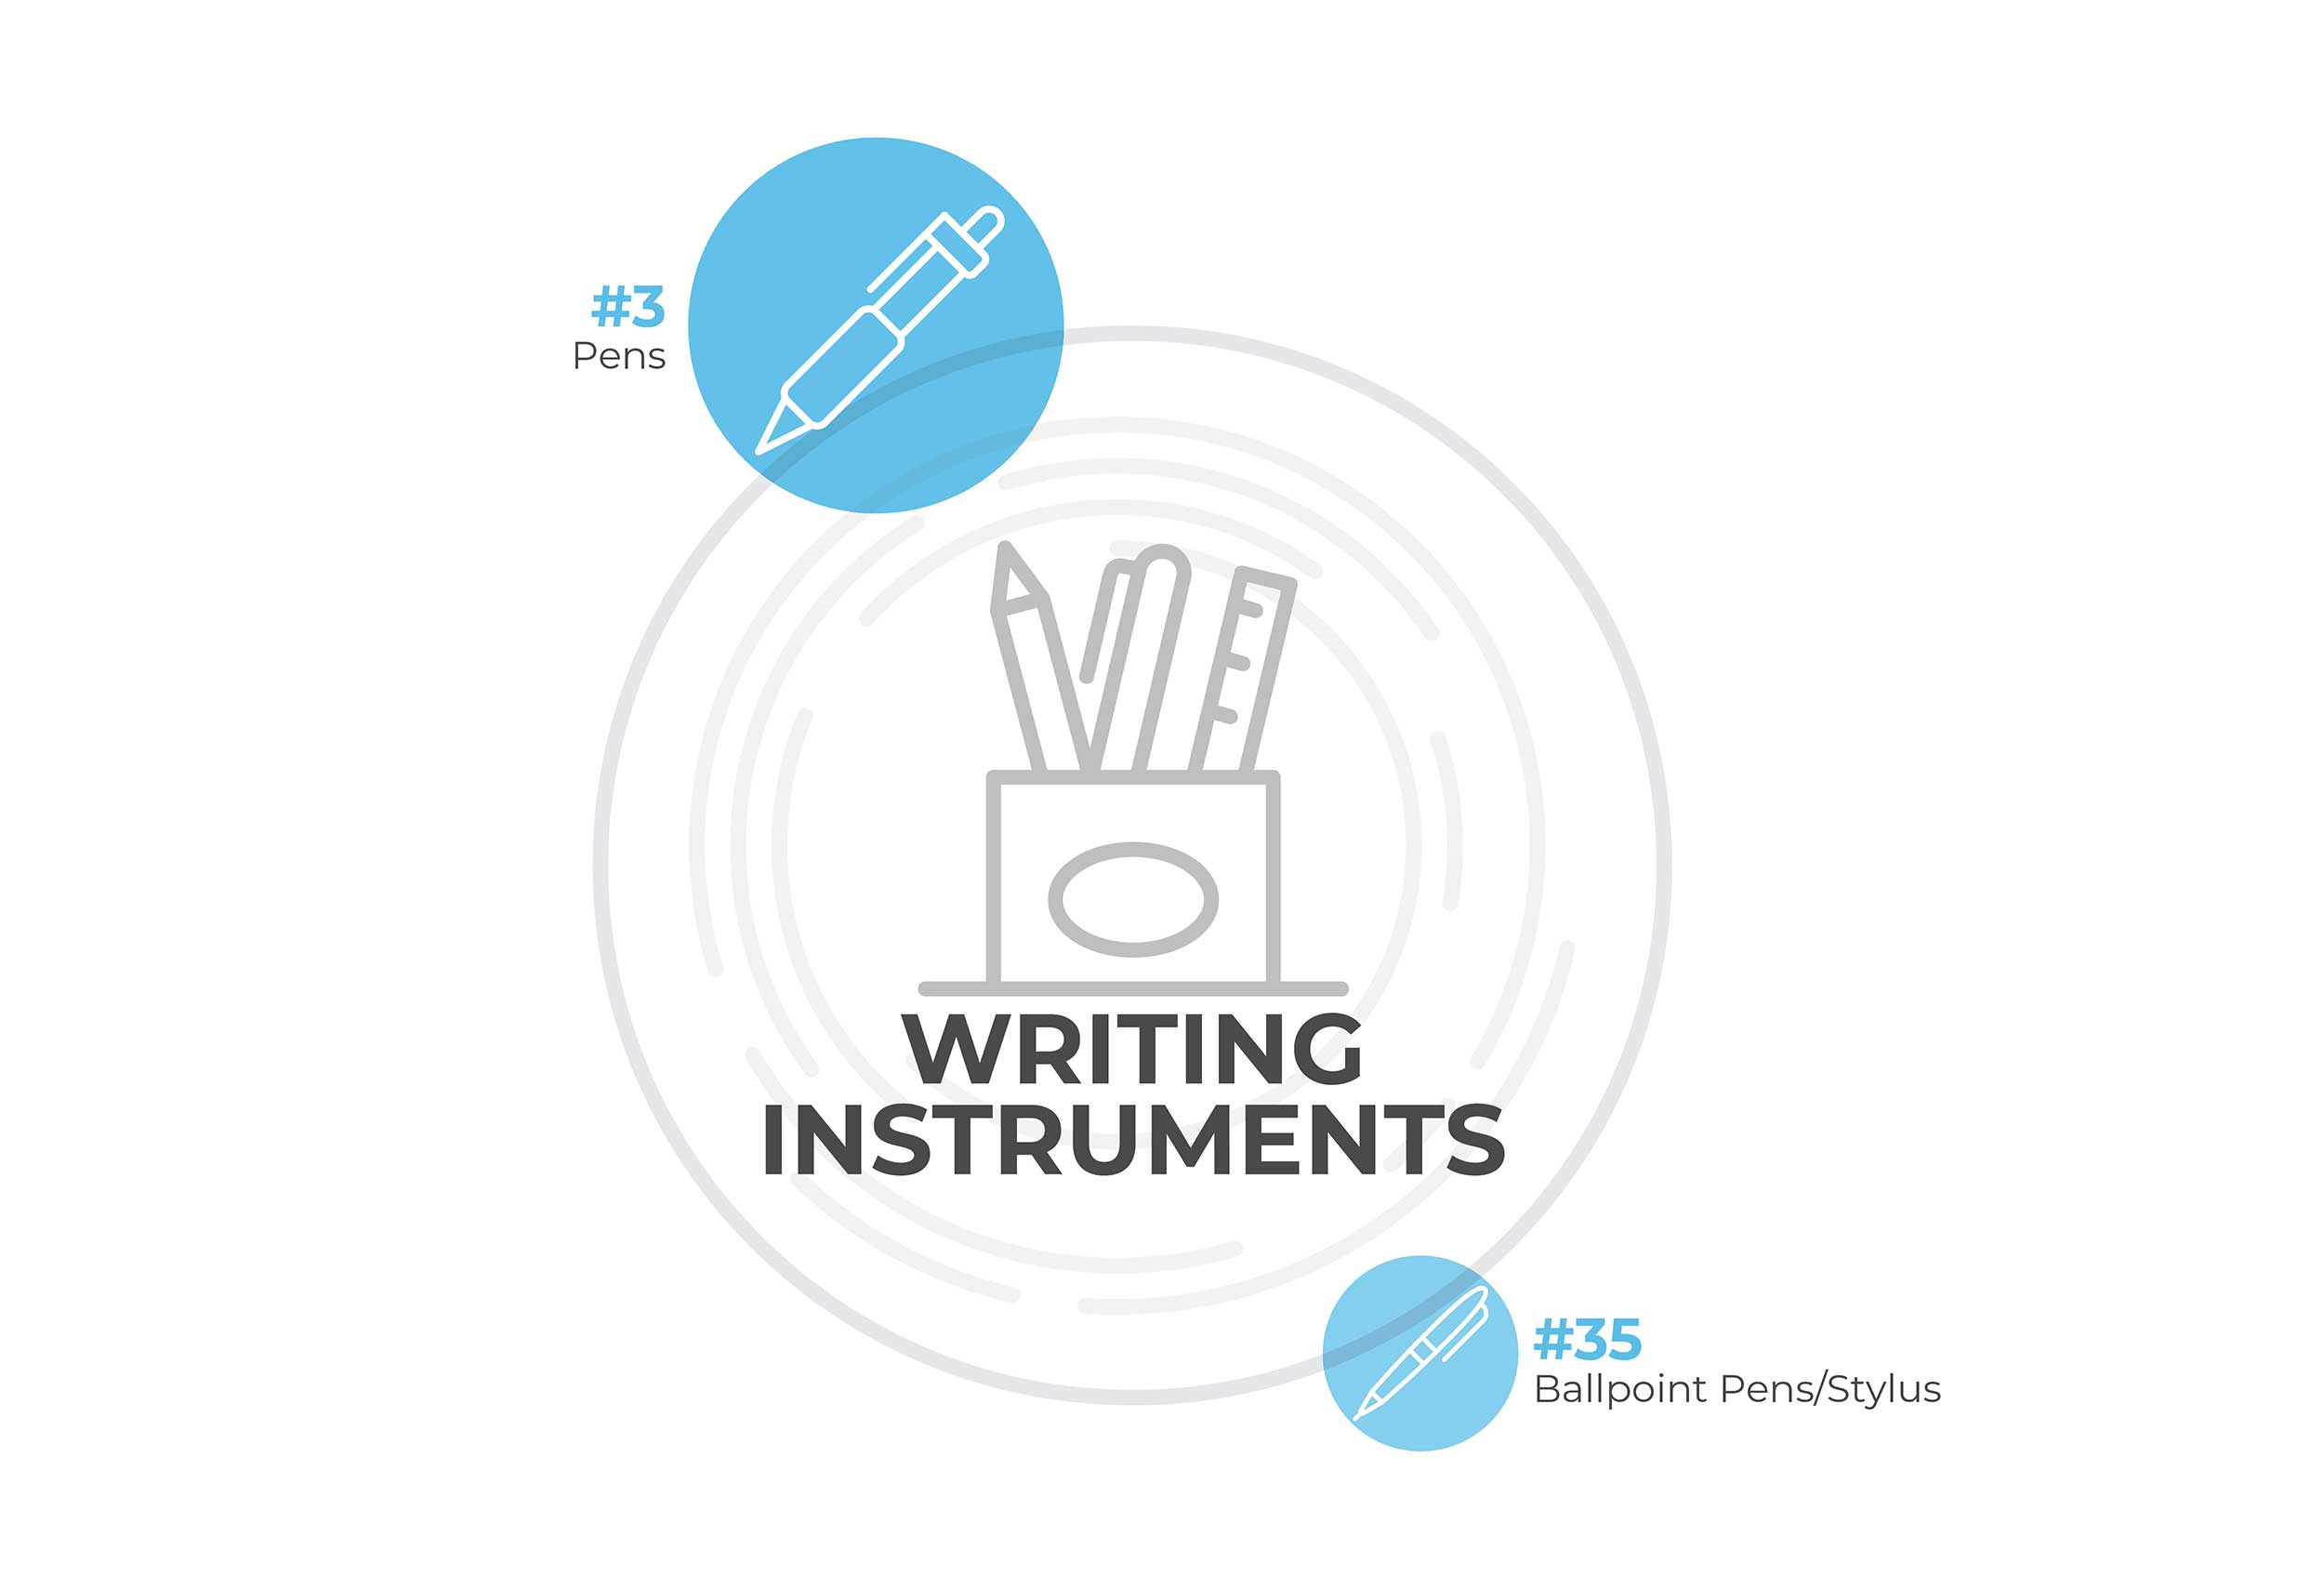 writing instruments image